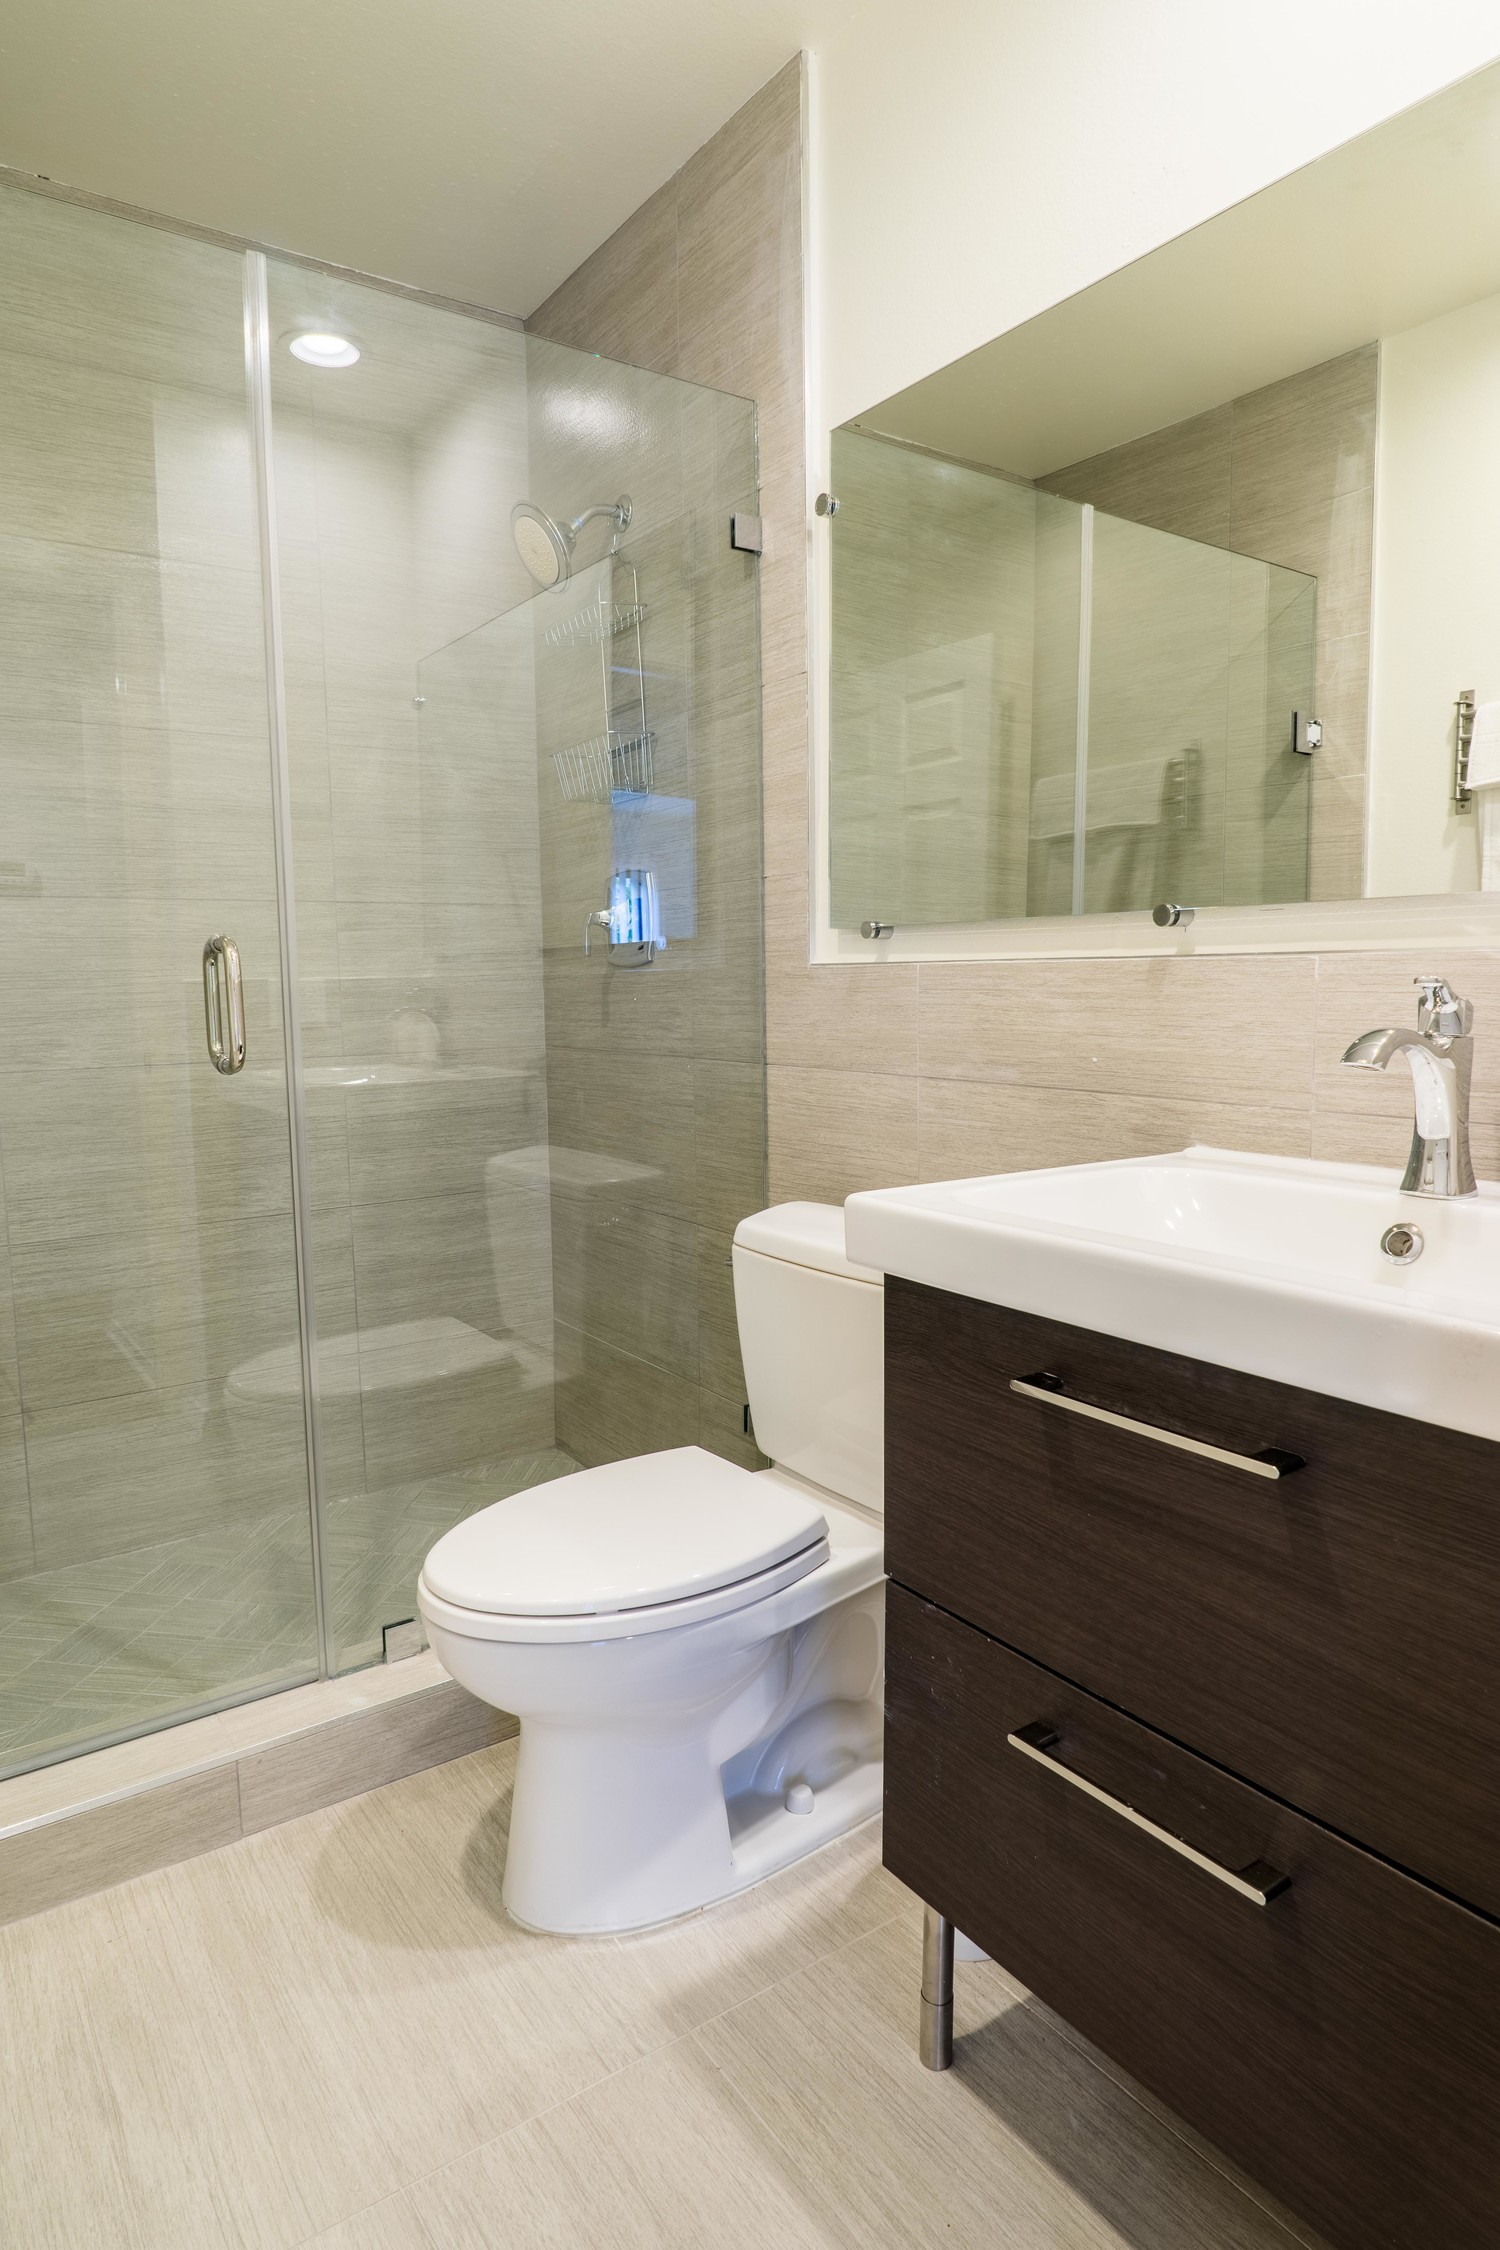 2bd 2 bath Loft room for rent at Pelham Ave Apts